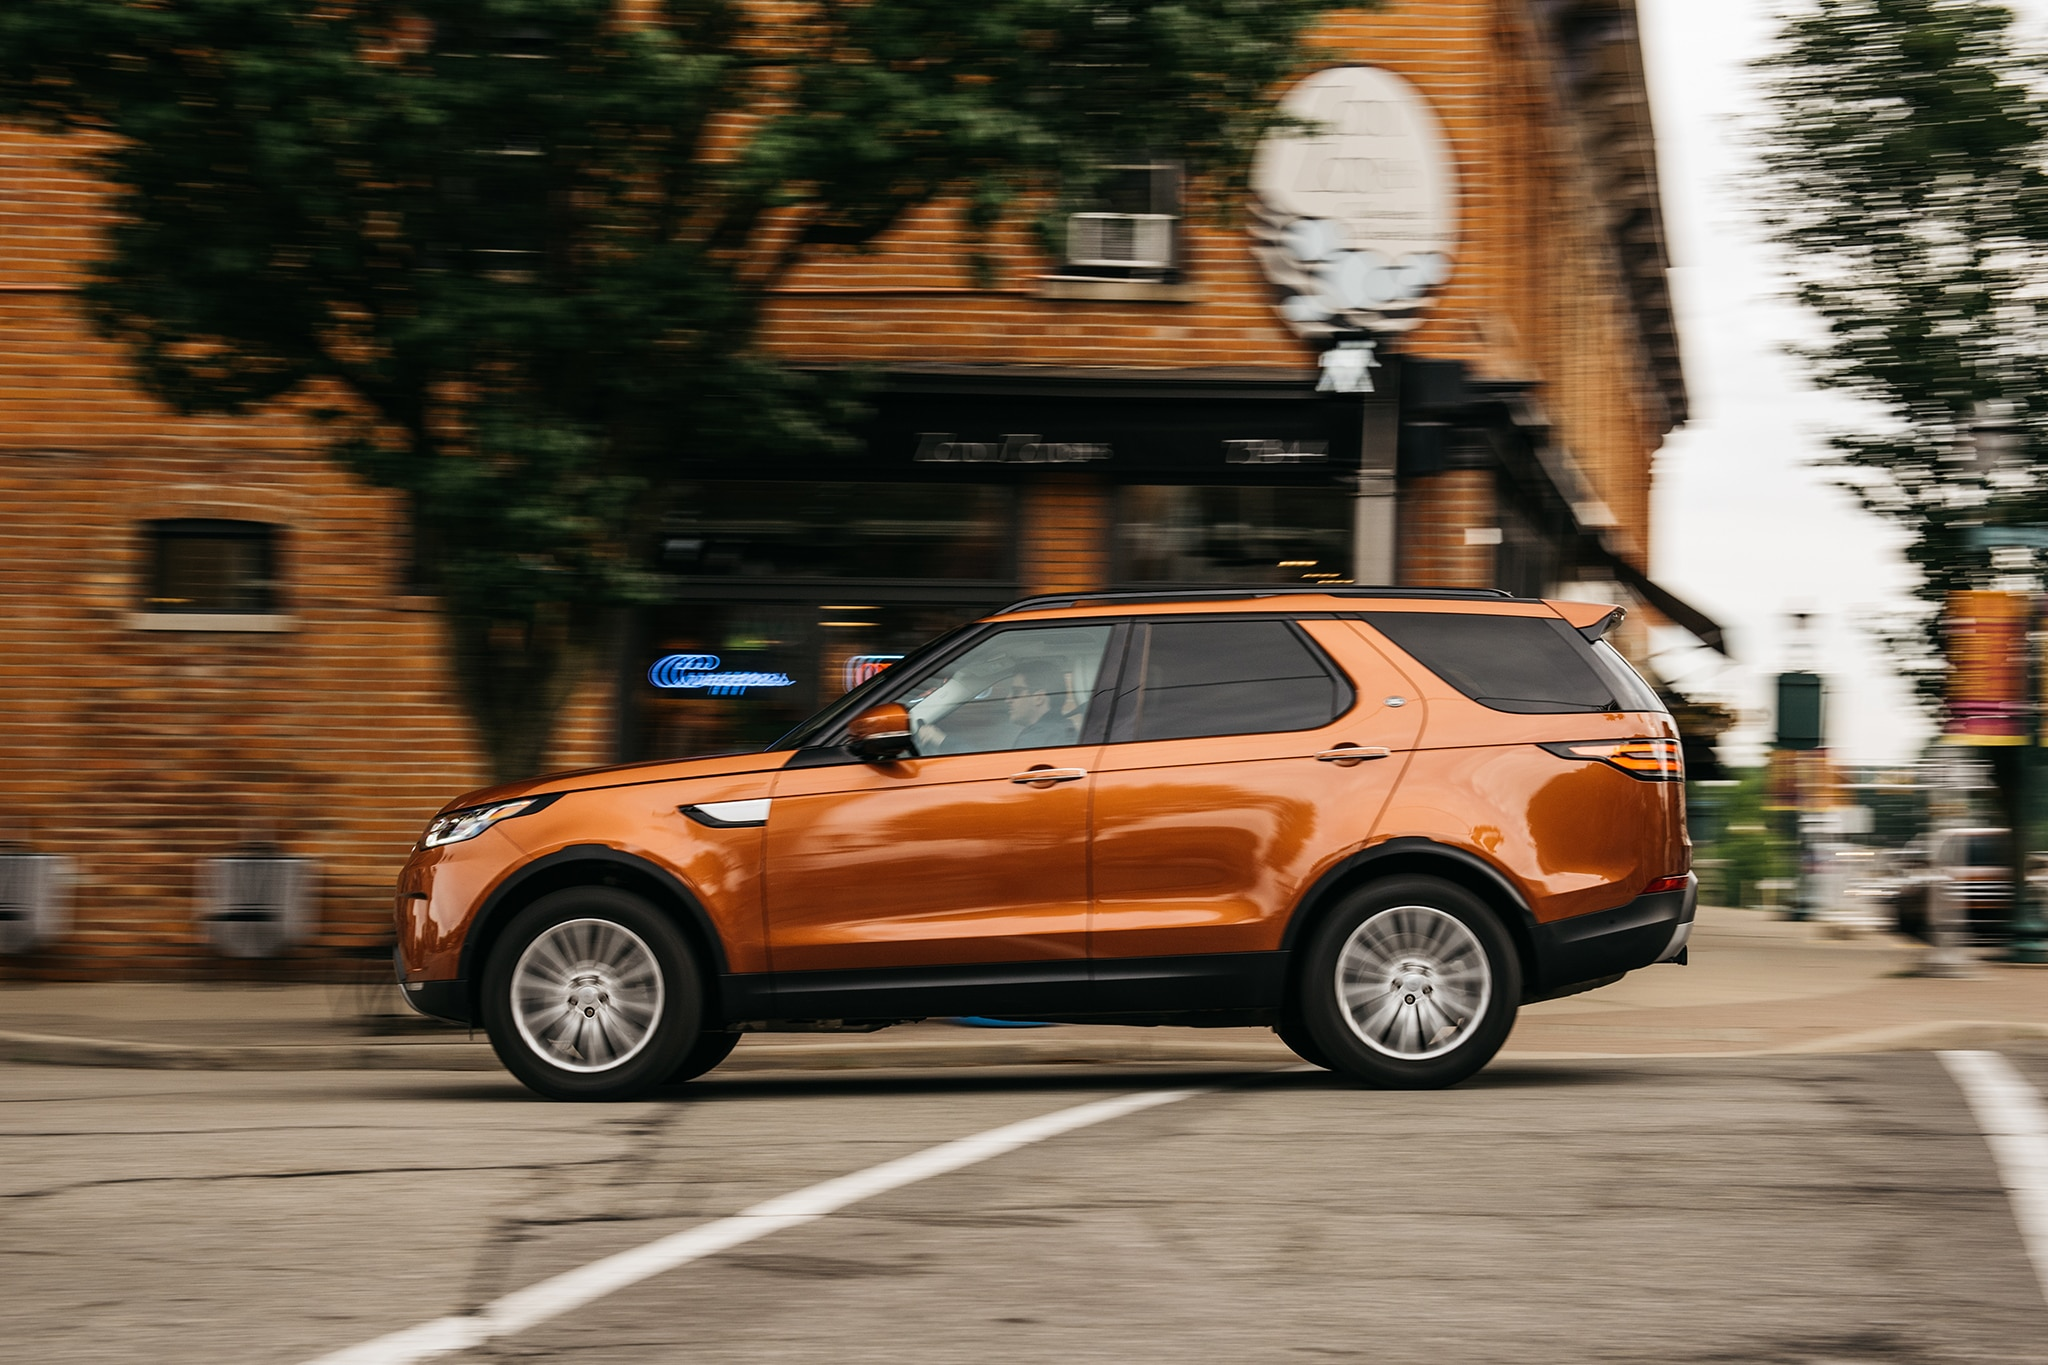 2017 Land Rover Discovery Td6 HSE Side Profile In Motion 02